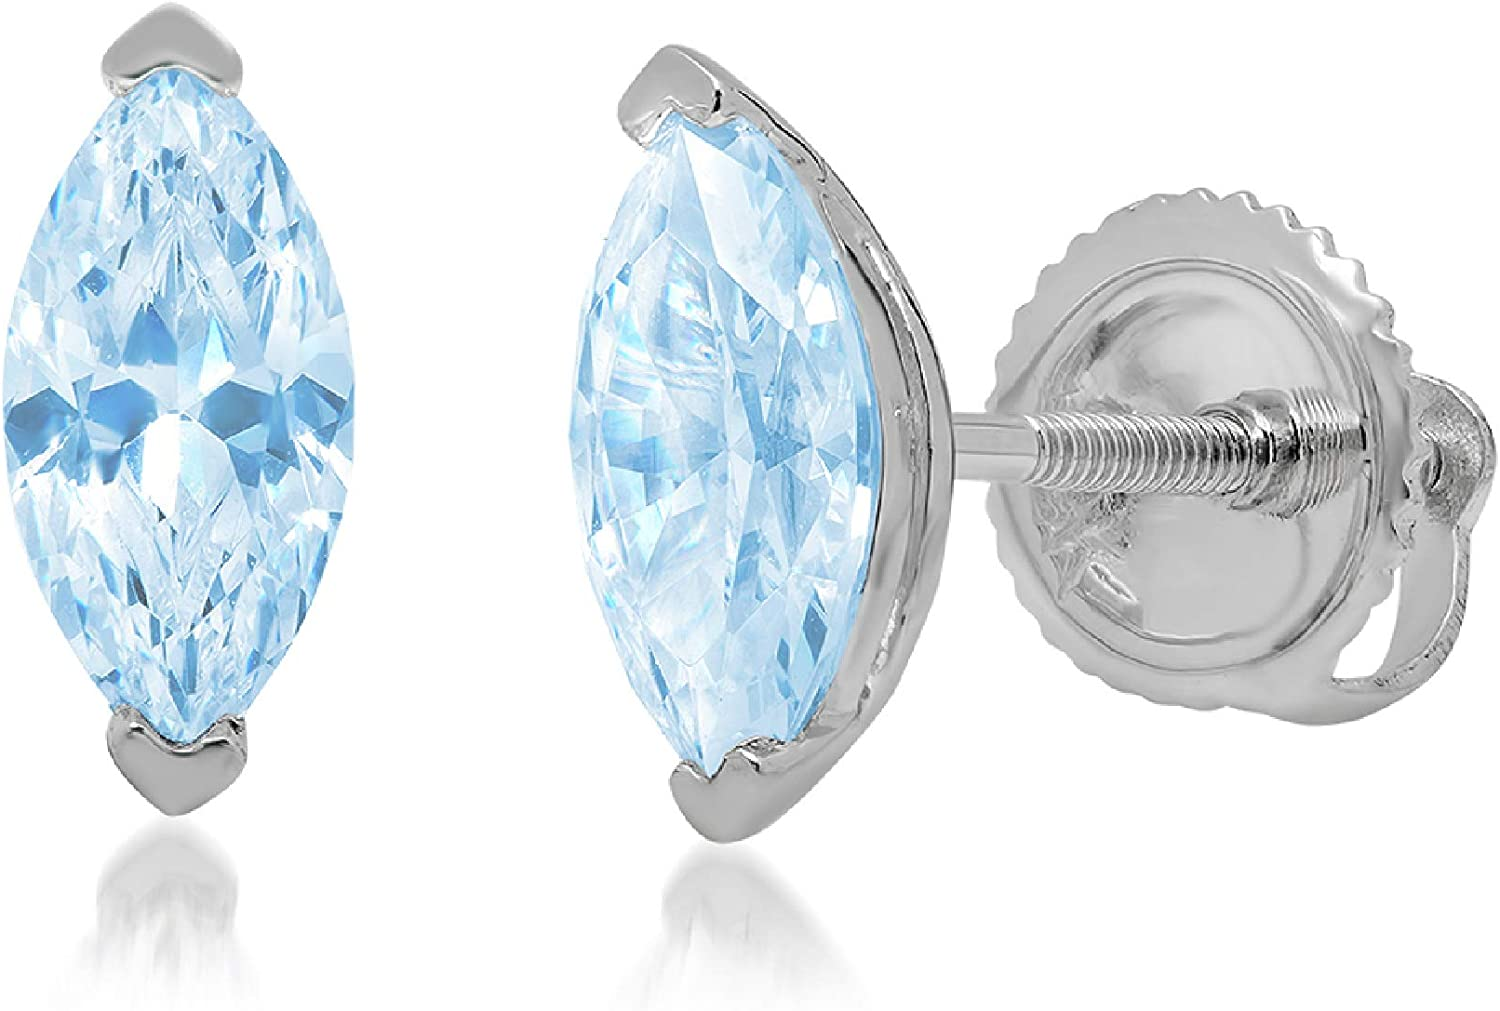 0.9ct Marquise Cut Solitaire Aquamarine Blue Simulated Diamond CZ Unisex Designer Stud Earrings Solid 14k White Gold Screw Back conflict free Jewelry